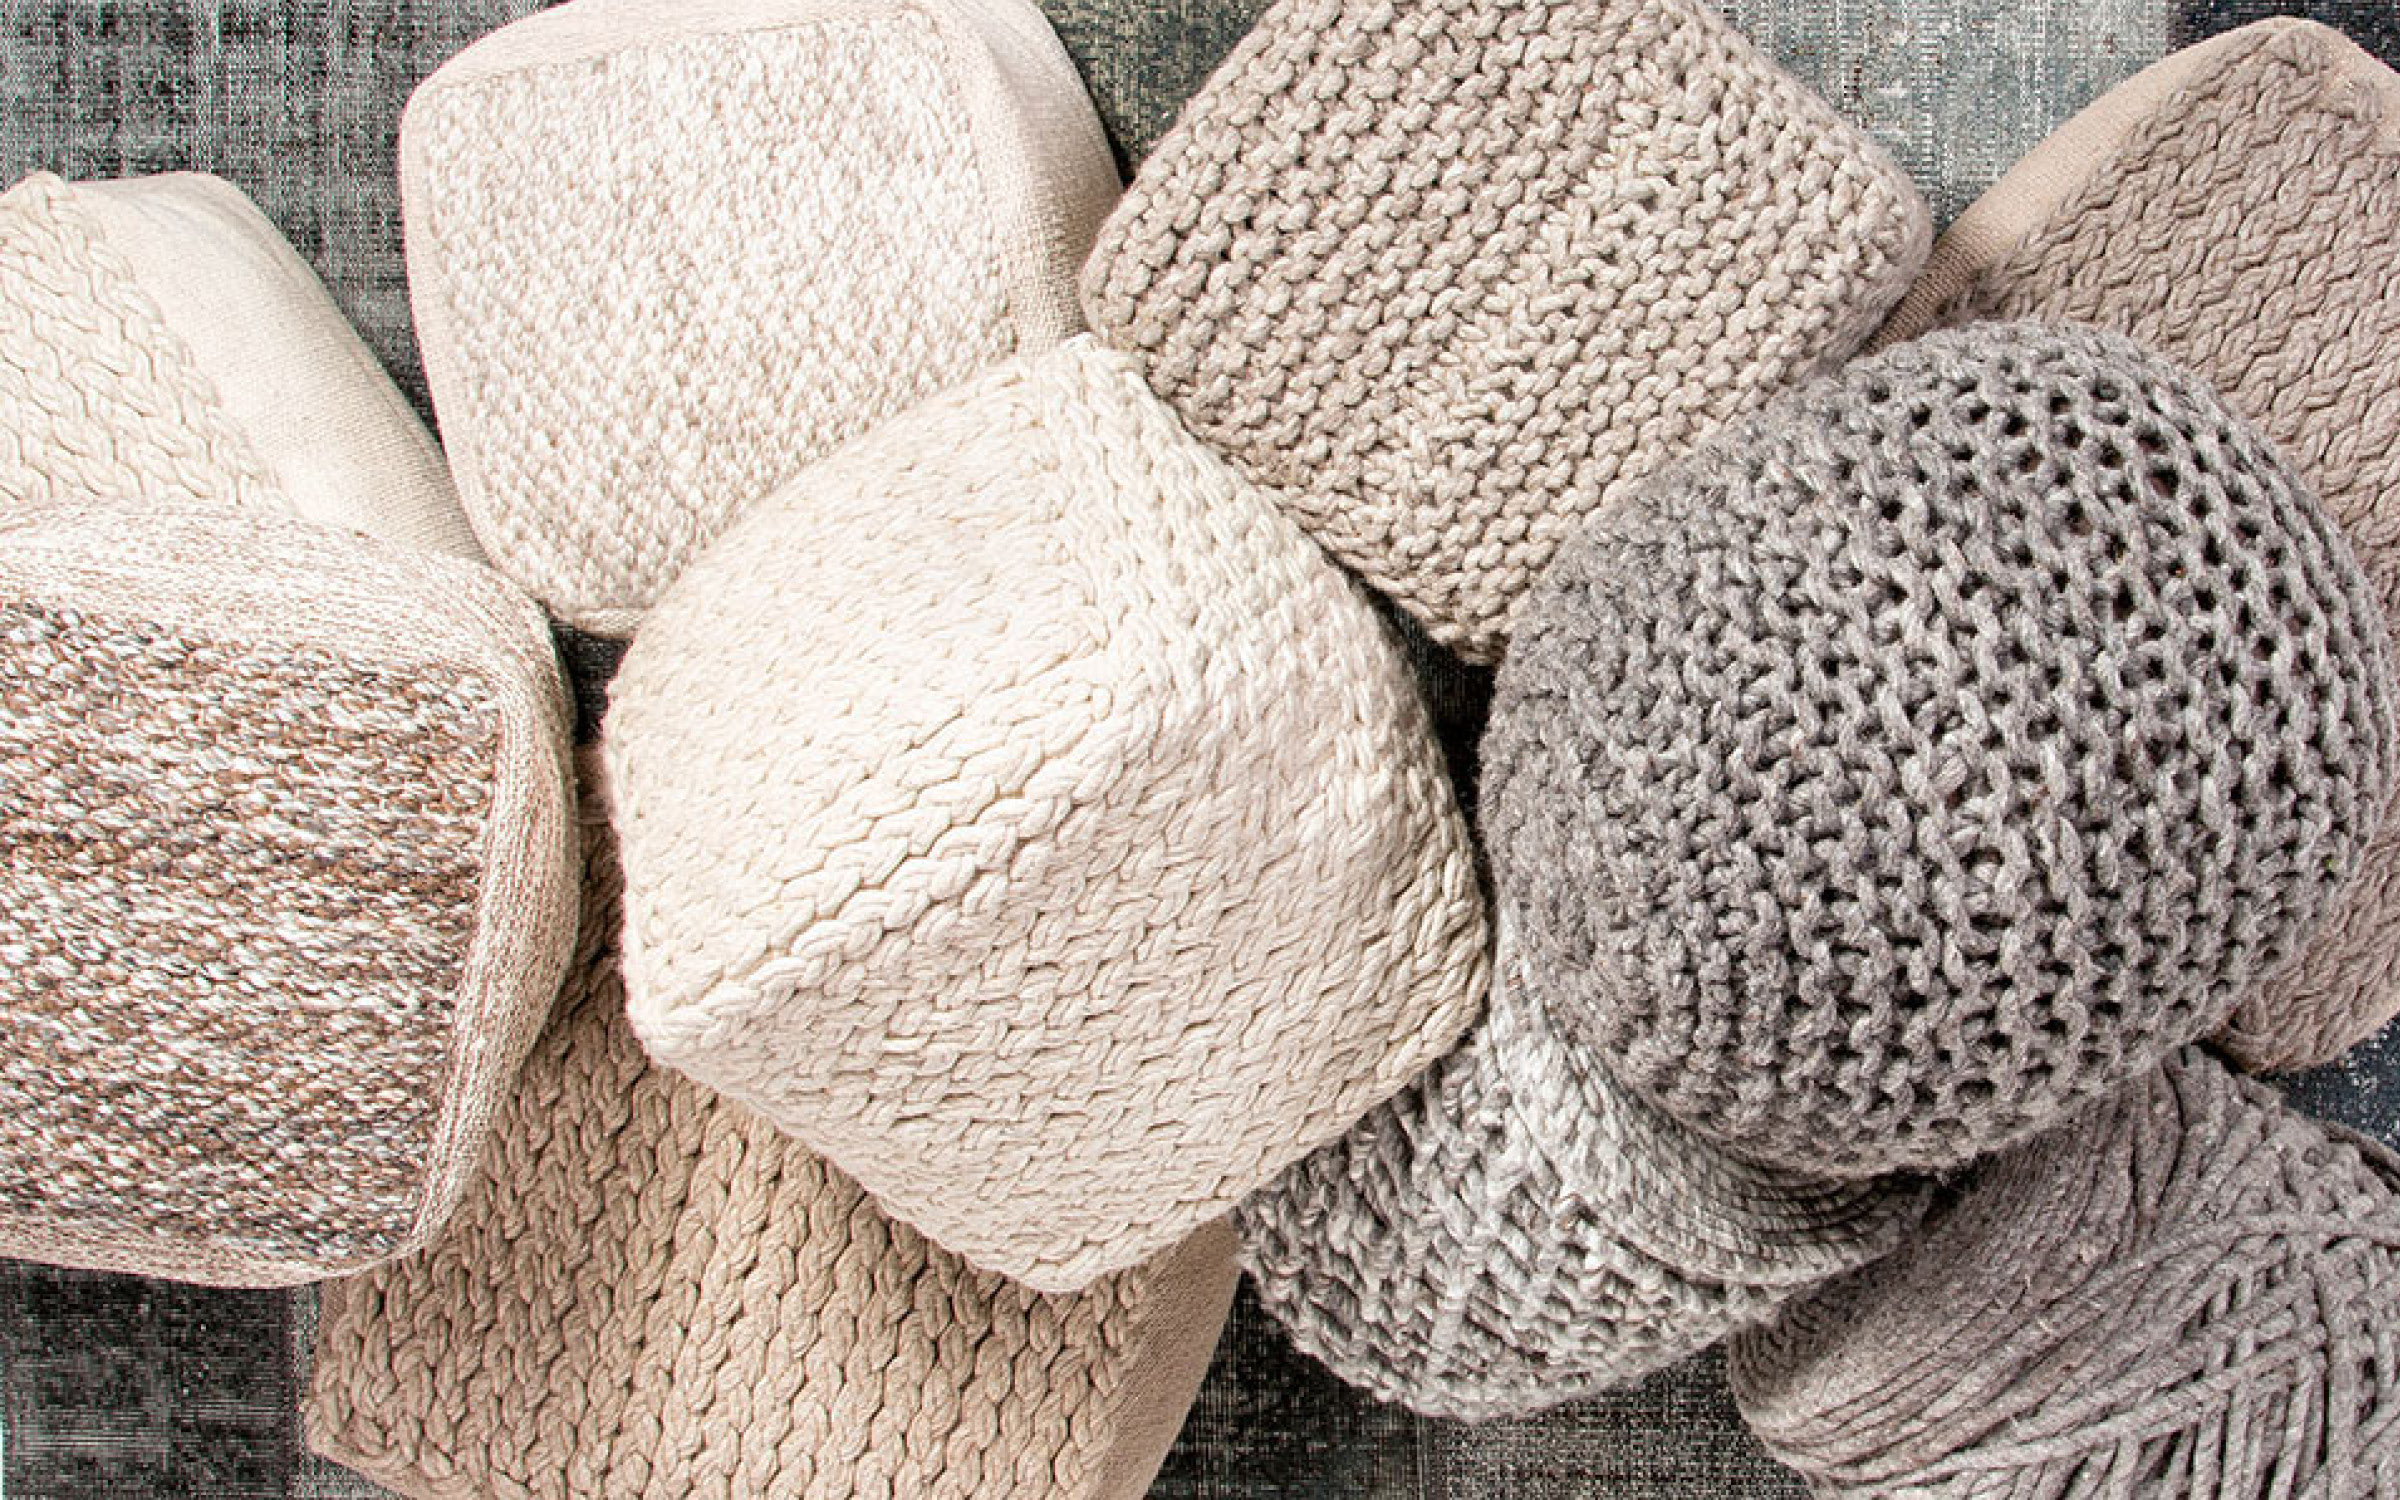 Knit and Woven Poufs Decor Accents | iFurnish, Frisco, CO